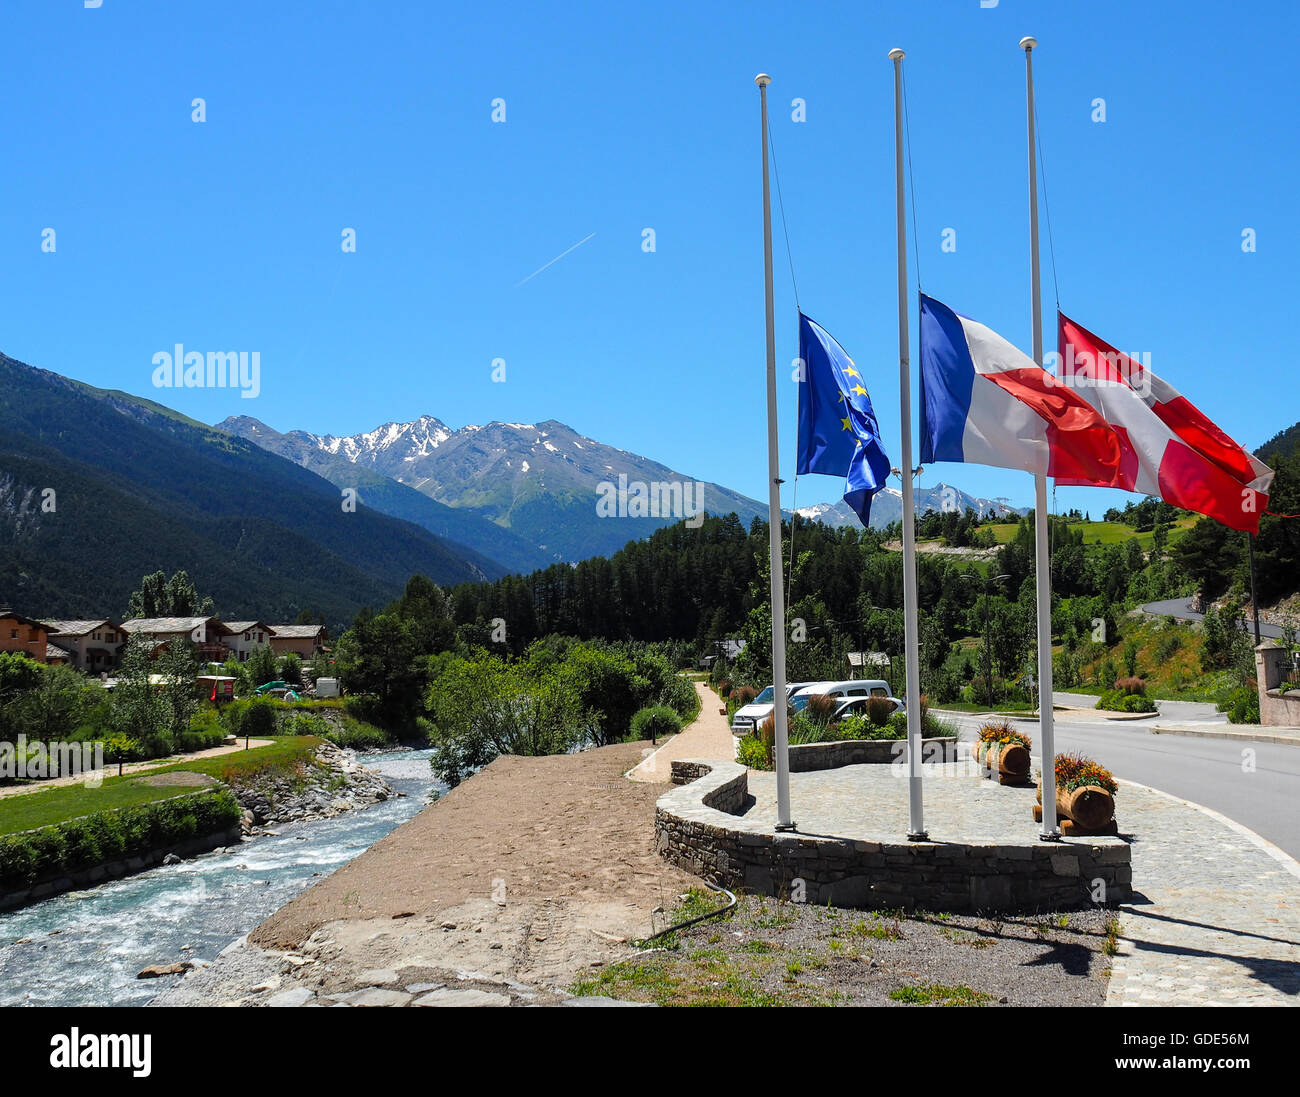 Termignon, France. 16th July, 2016. Flags fly at half mast in the Alpine Village as a mark of respect for those - Stock Image